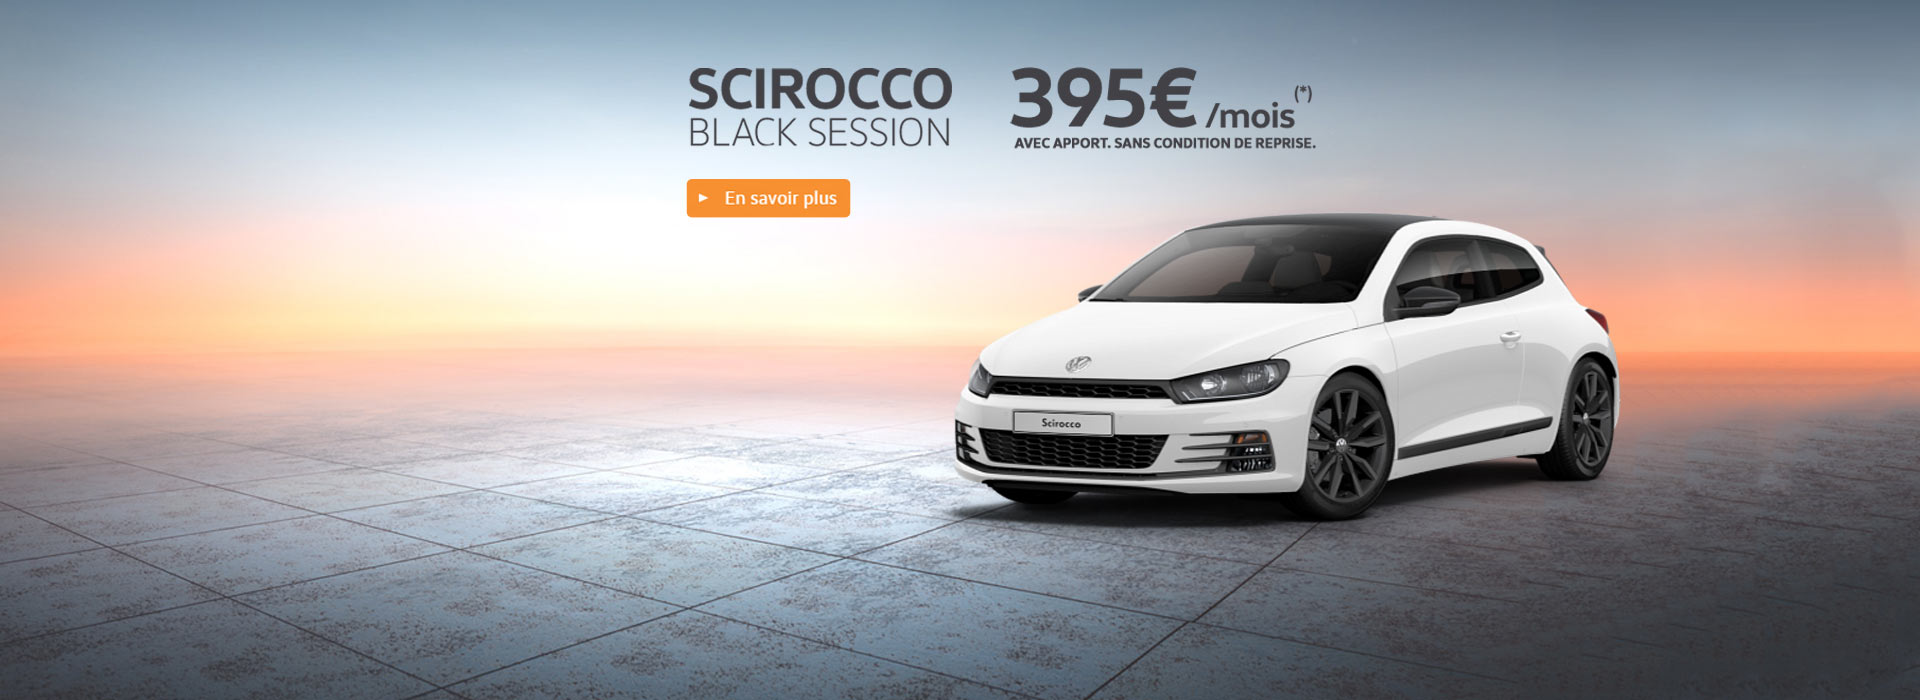 Scirocco Blcak Session